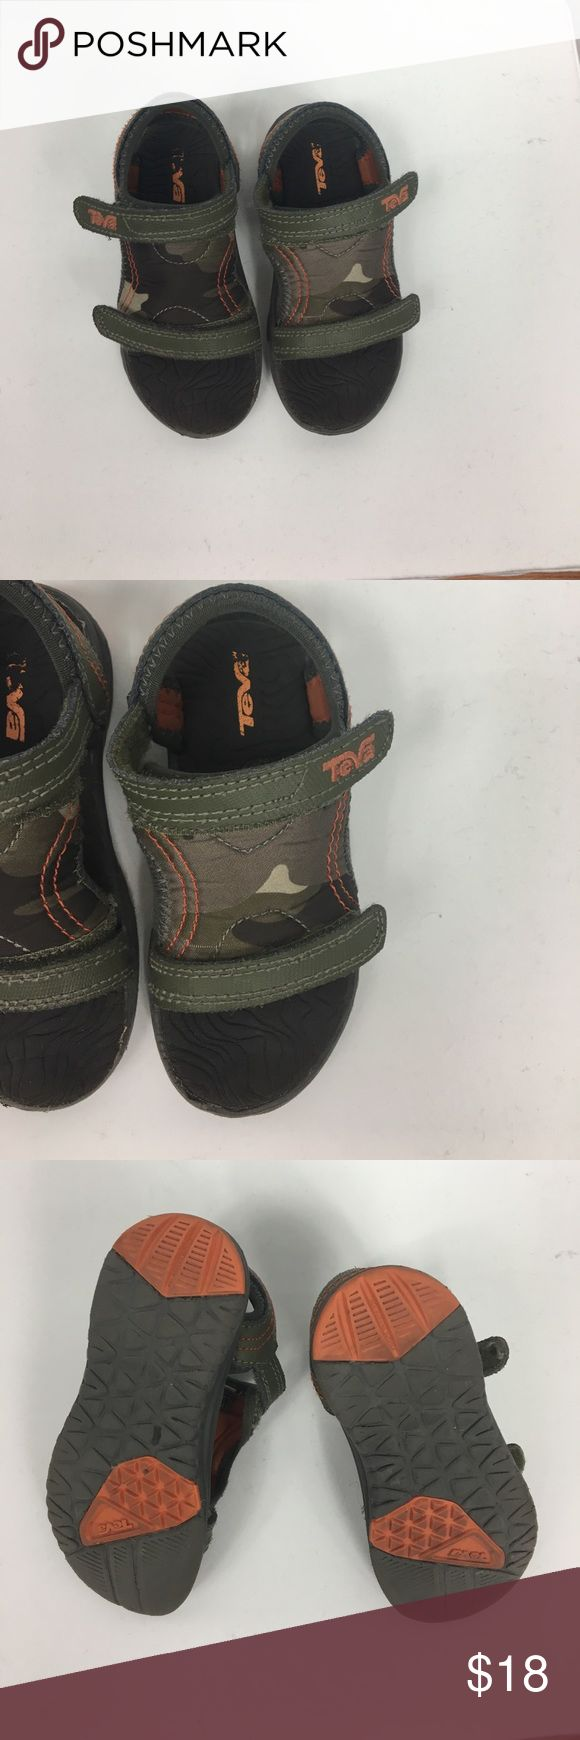 Teva>Toddler leather upper Velcro sandal GUC Size 7 Toddler Teva sandal in good condition. Camouflage design, leather upper, Velcro closure. Very comfy and perfect for summer! No box, GUC. Teva Shoes Sandals & Flip Flops